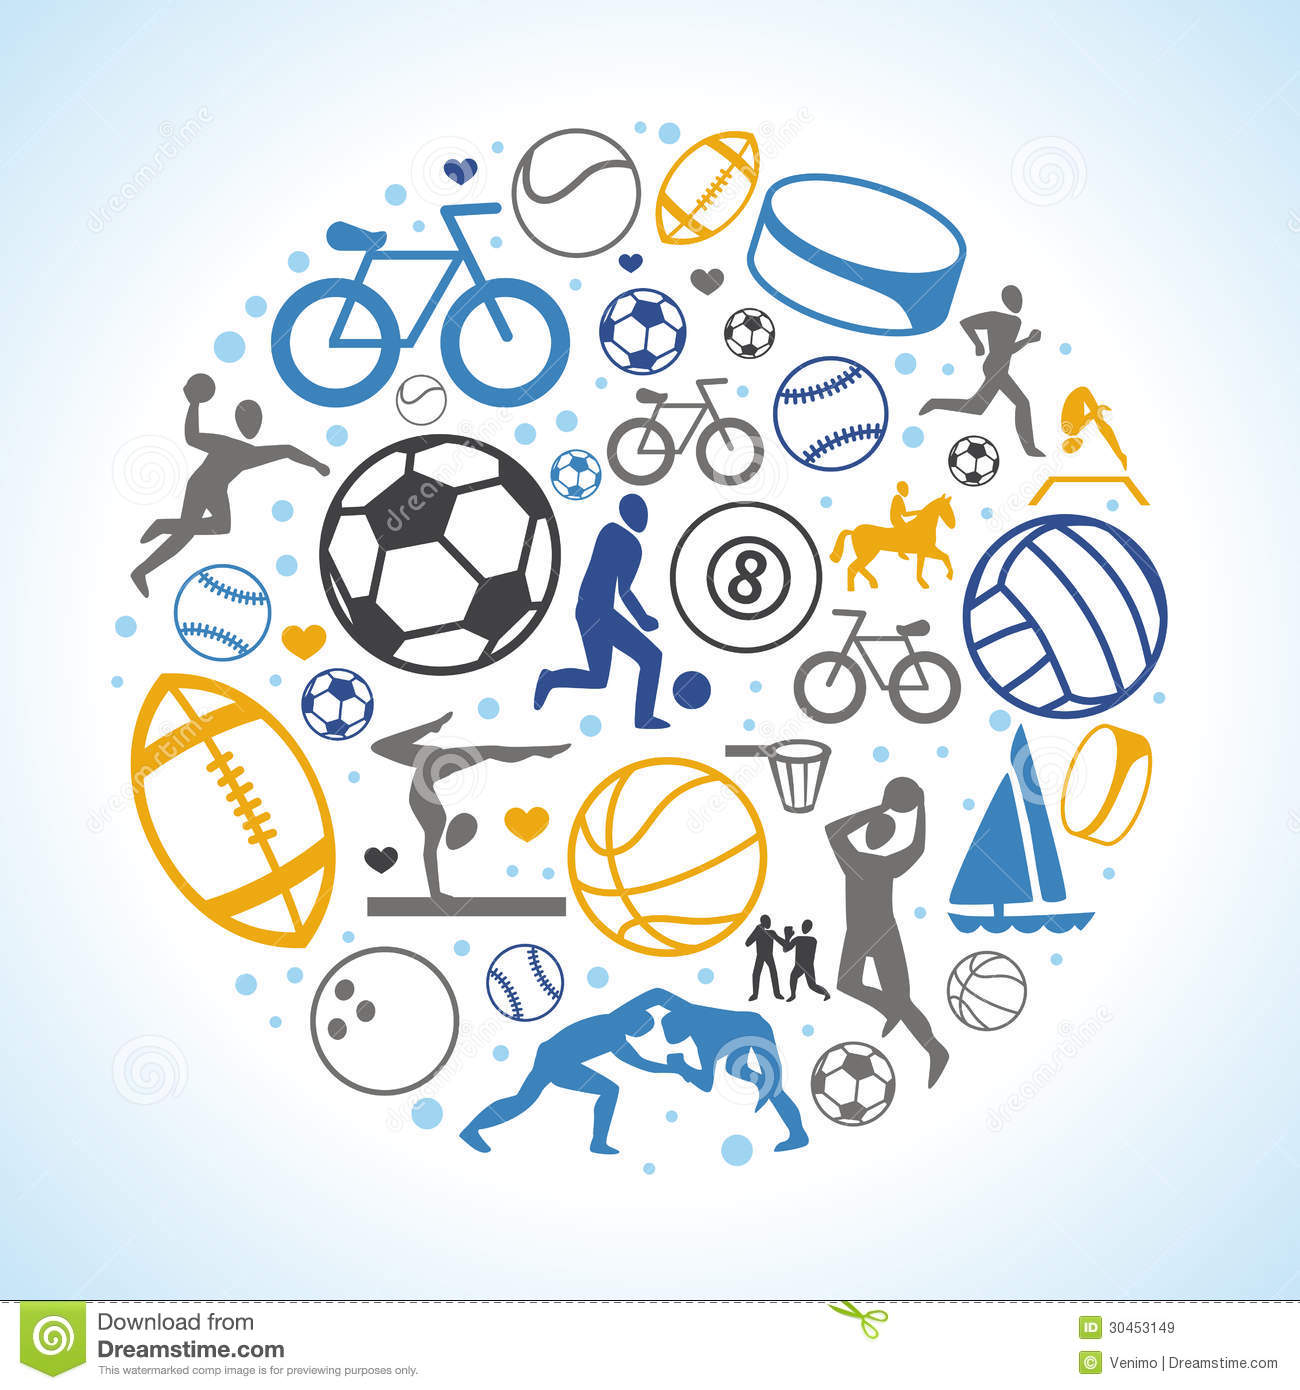 Royalty Free Stock Images Vector Round Concept Sport Icons Signs Healthy Life Style Image30453149 on Beach Ball Clip Art